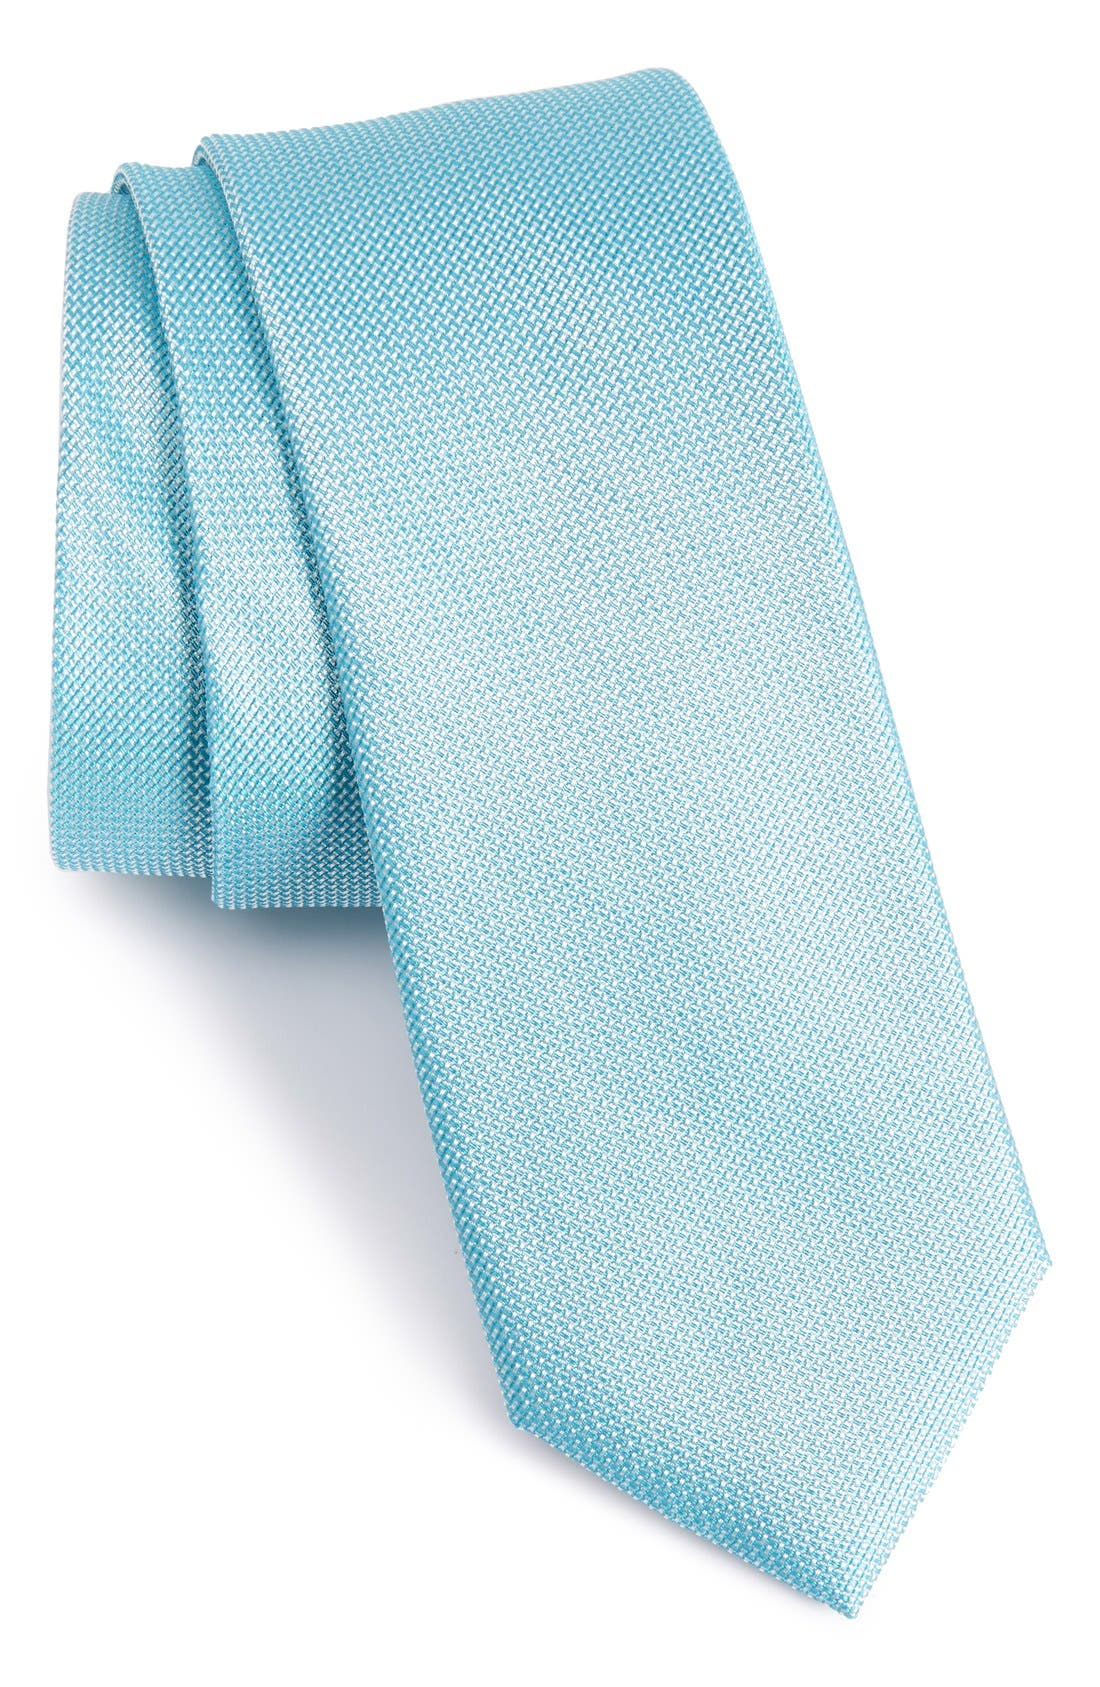 Alternate Image 1 Selected - Calibrate Solid Silk Tie